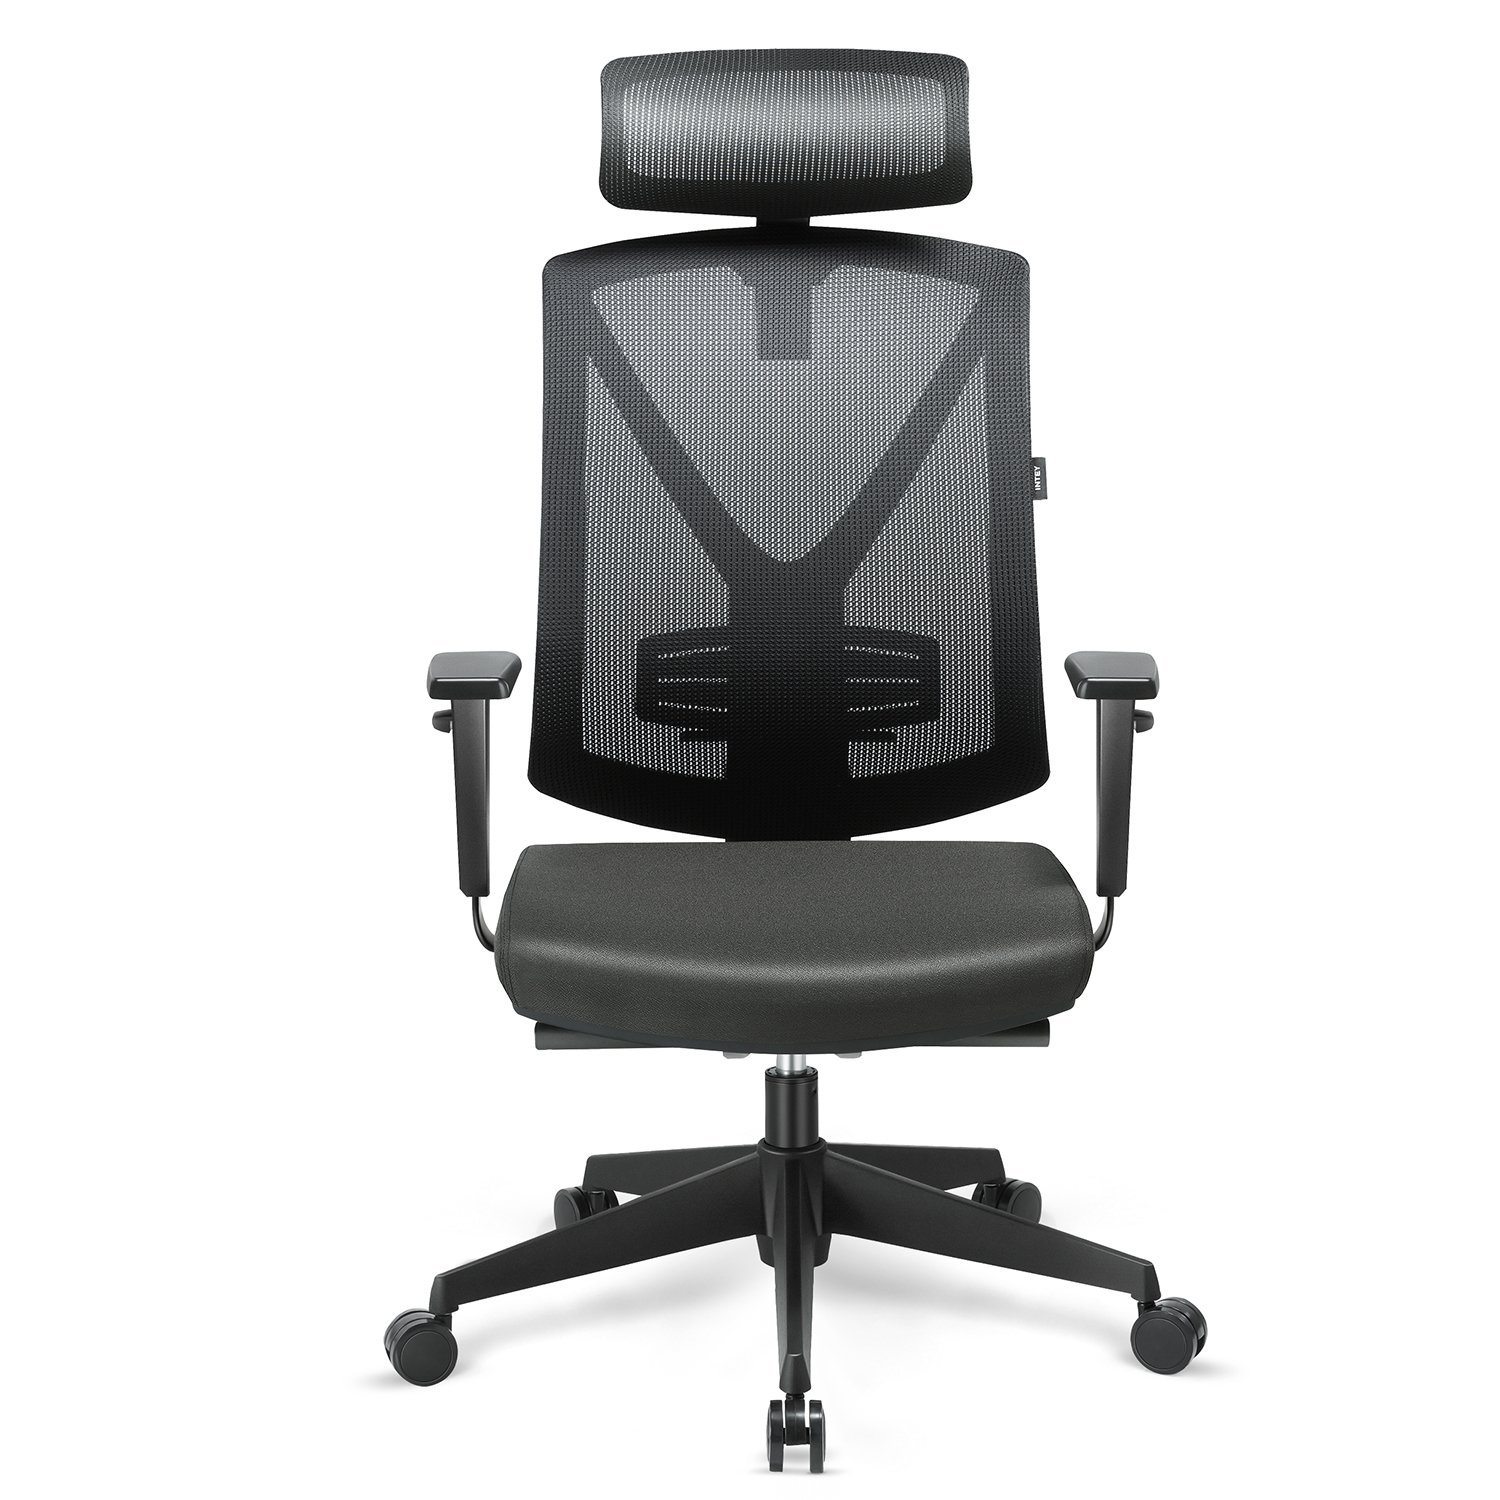 Ergonomic Mesh Office Desk Chair